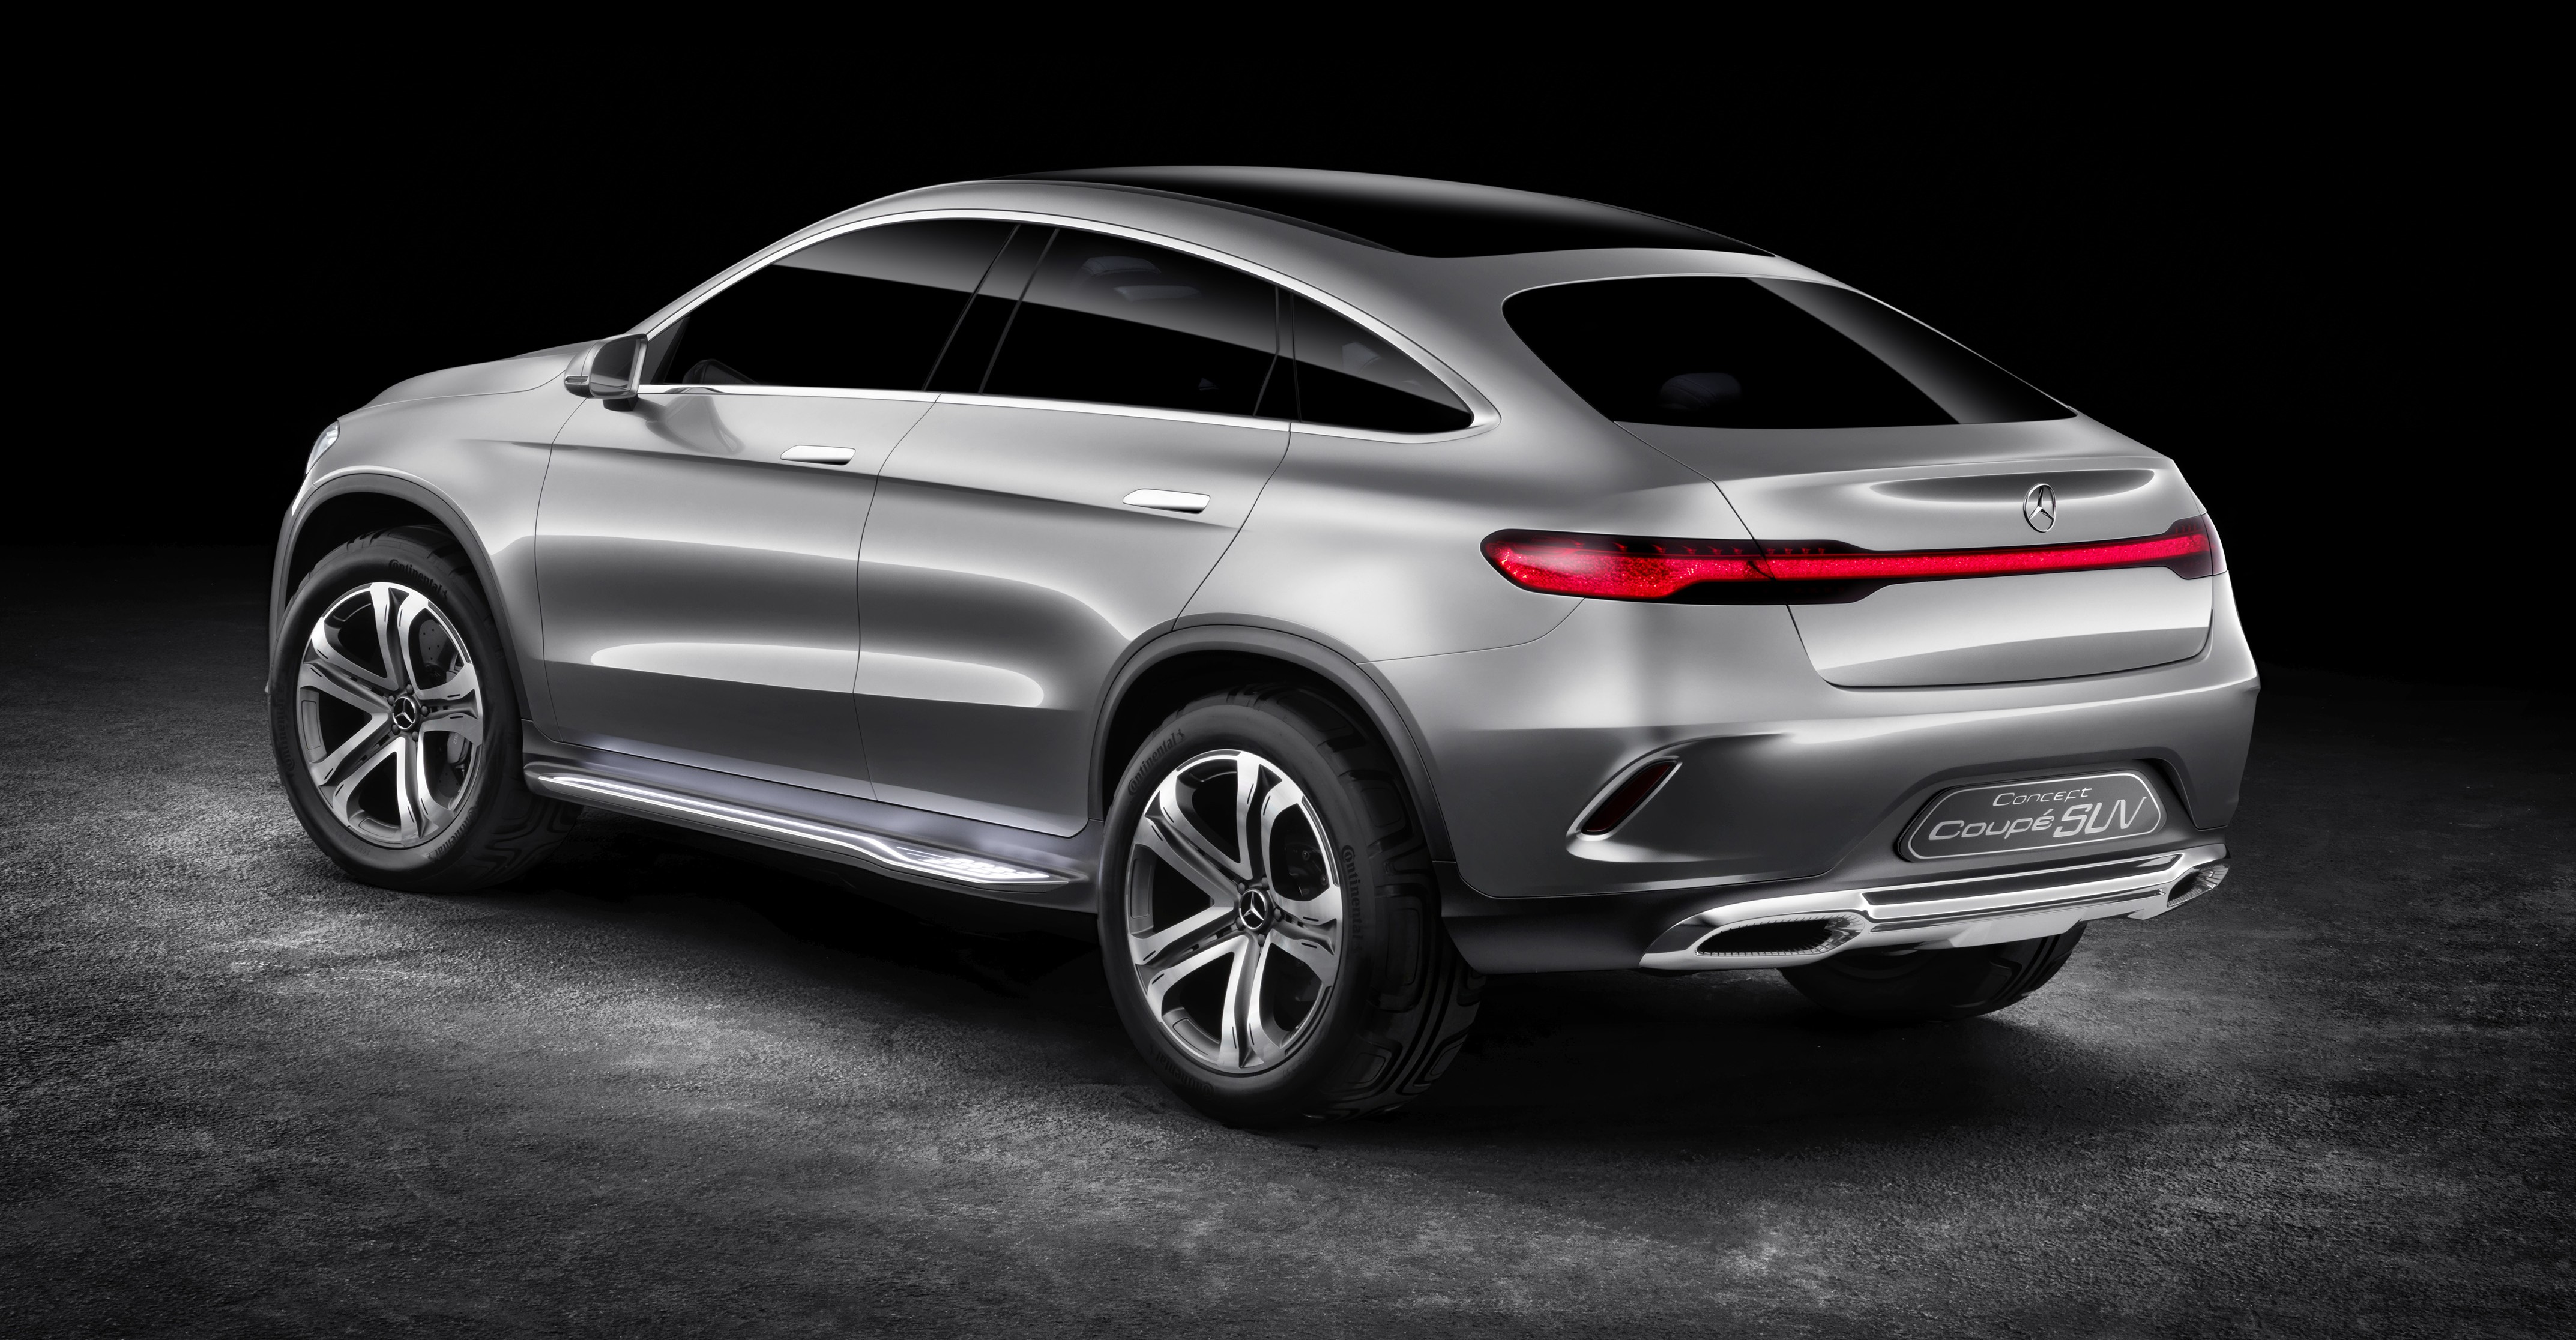 Mercedes benz coupe suv concept previews x6 rival image 242552 for Pictures of mercedes benz suv